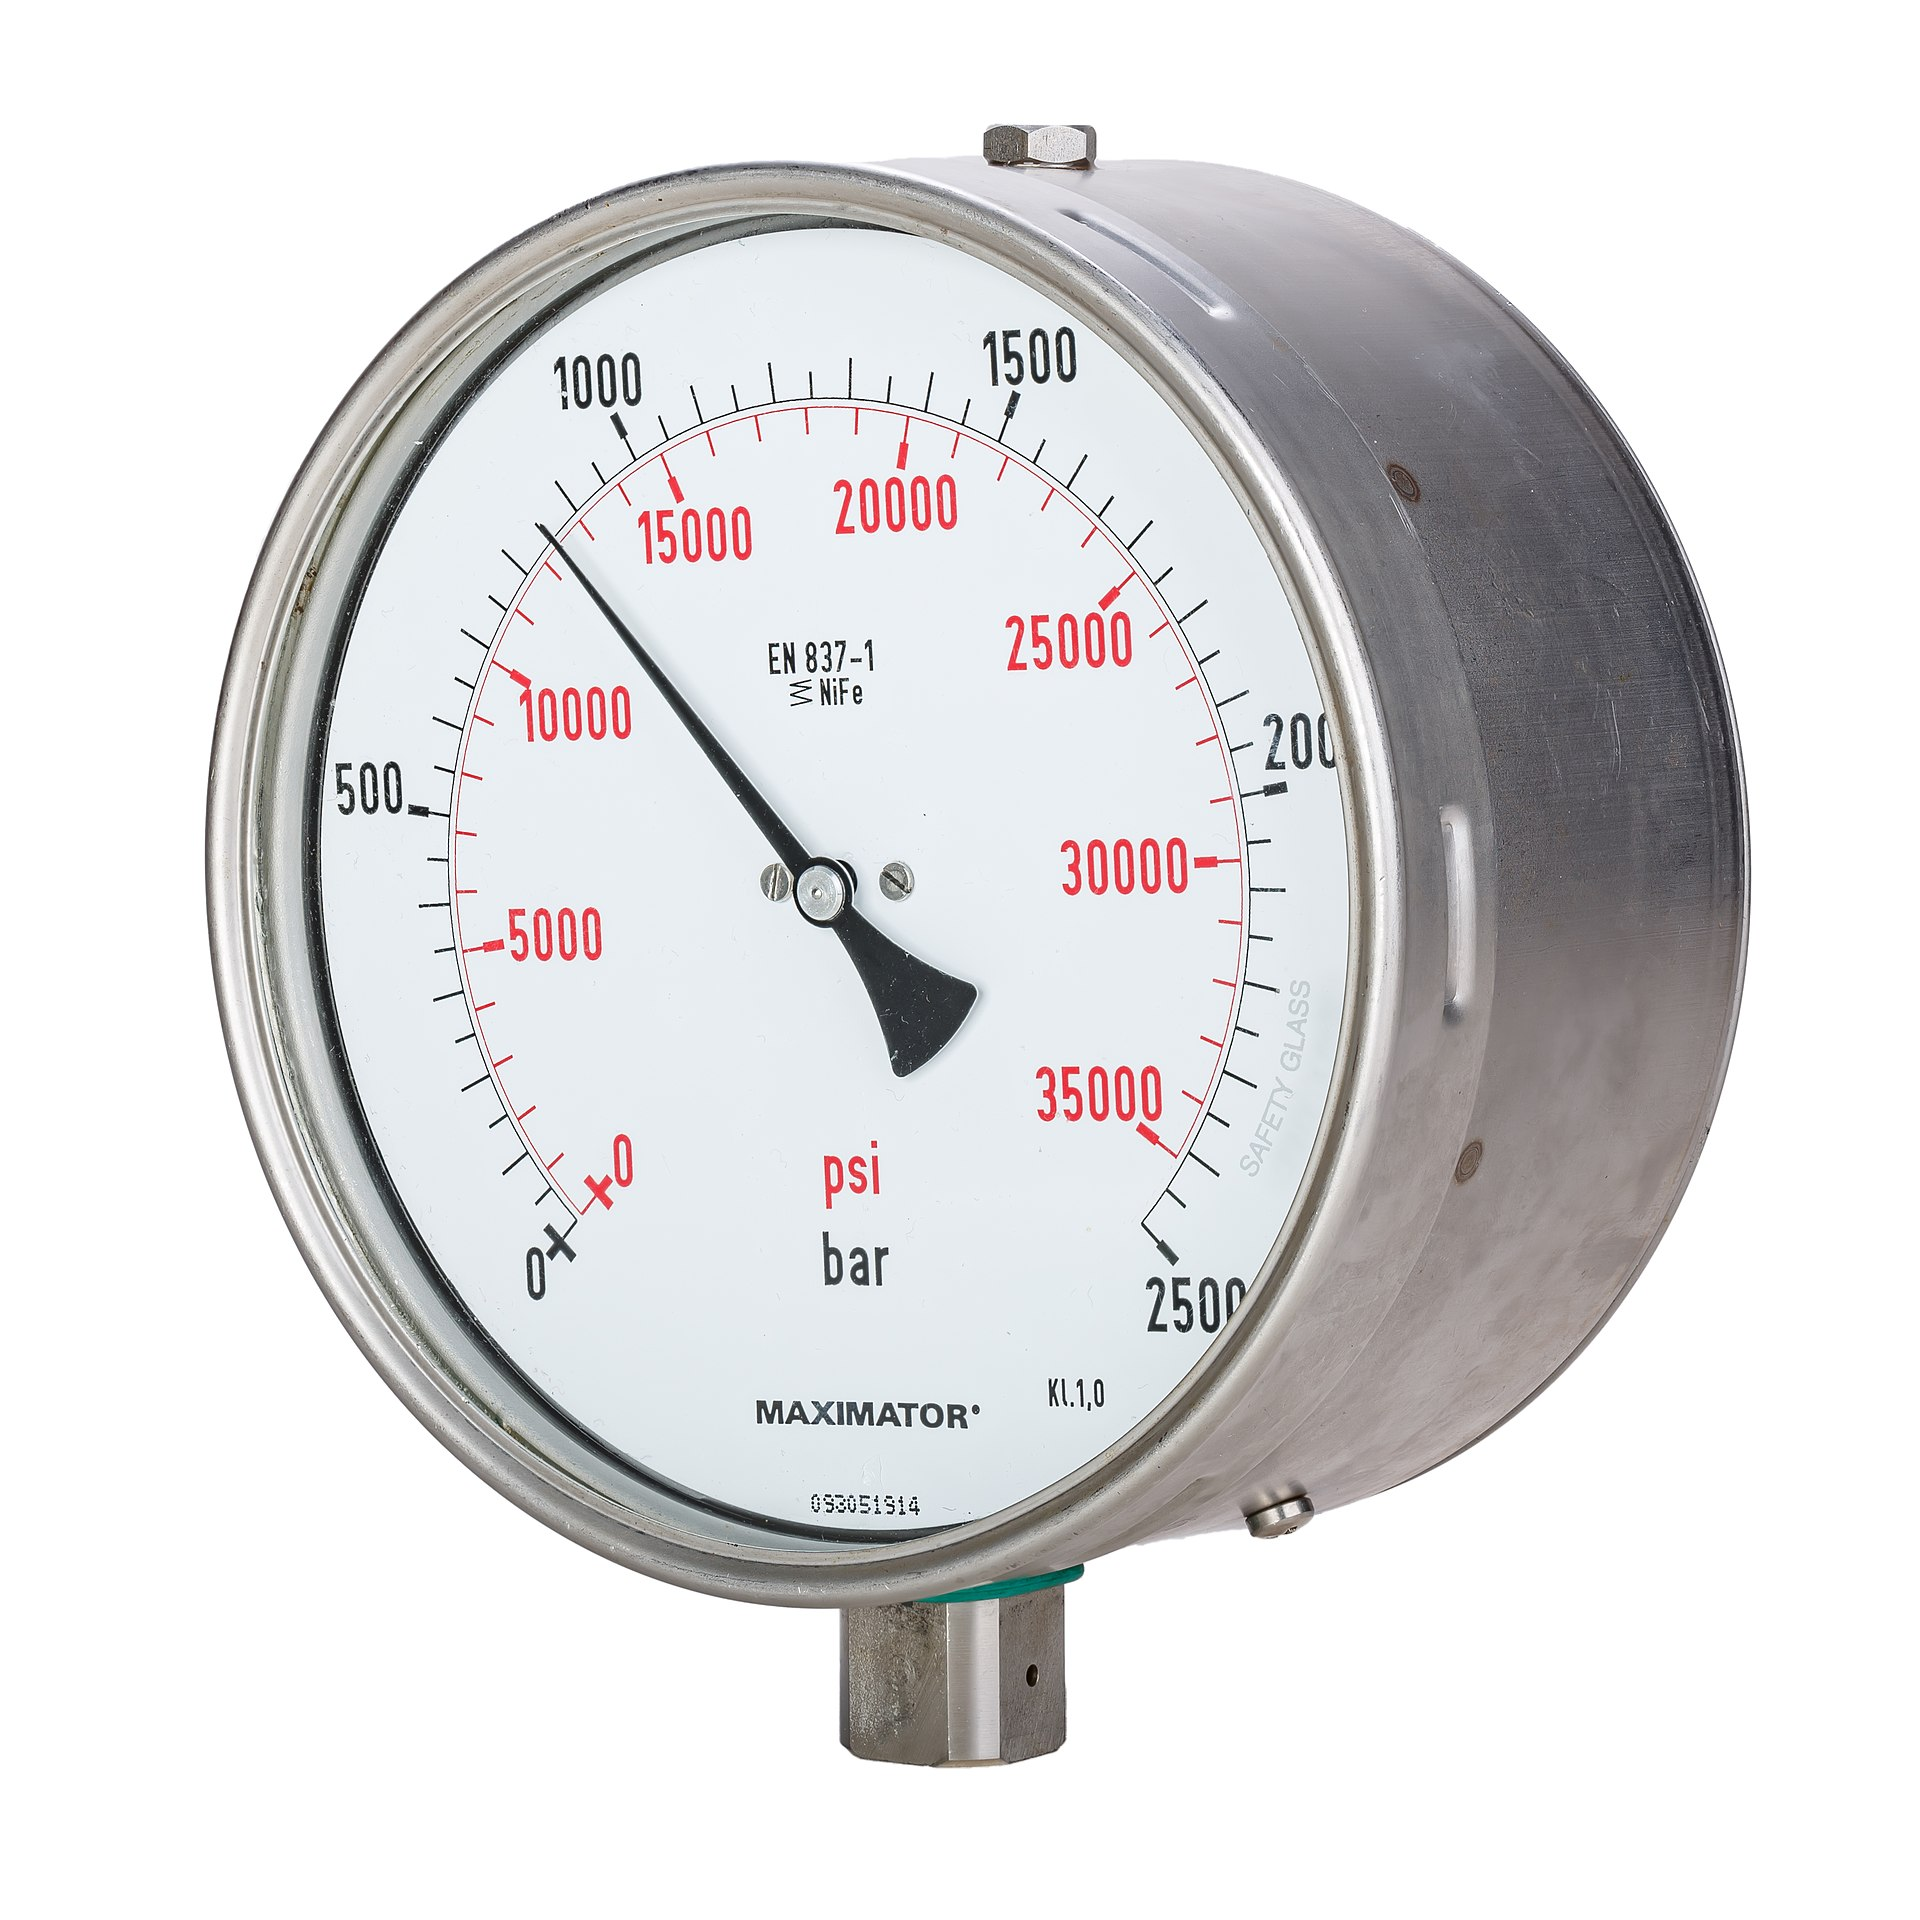 Pressure Measurement Wikipedia